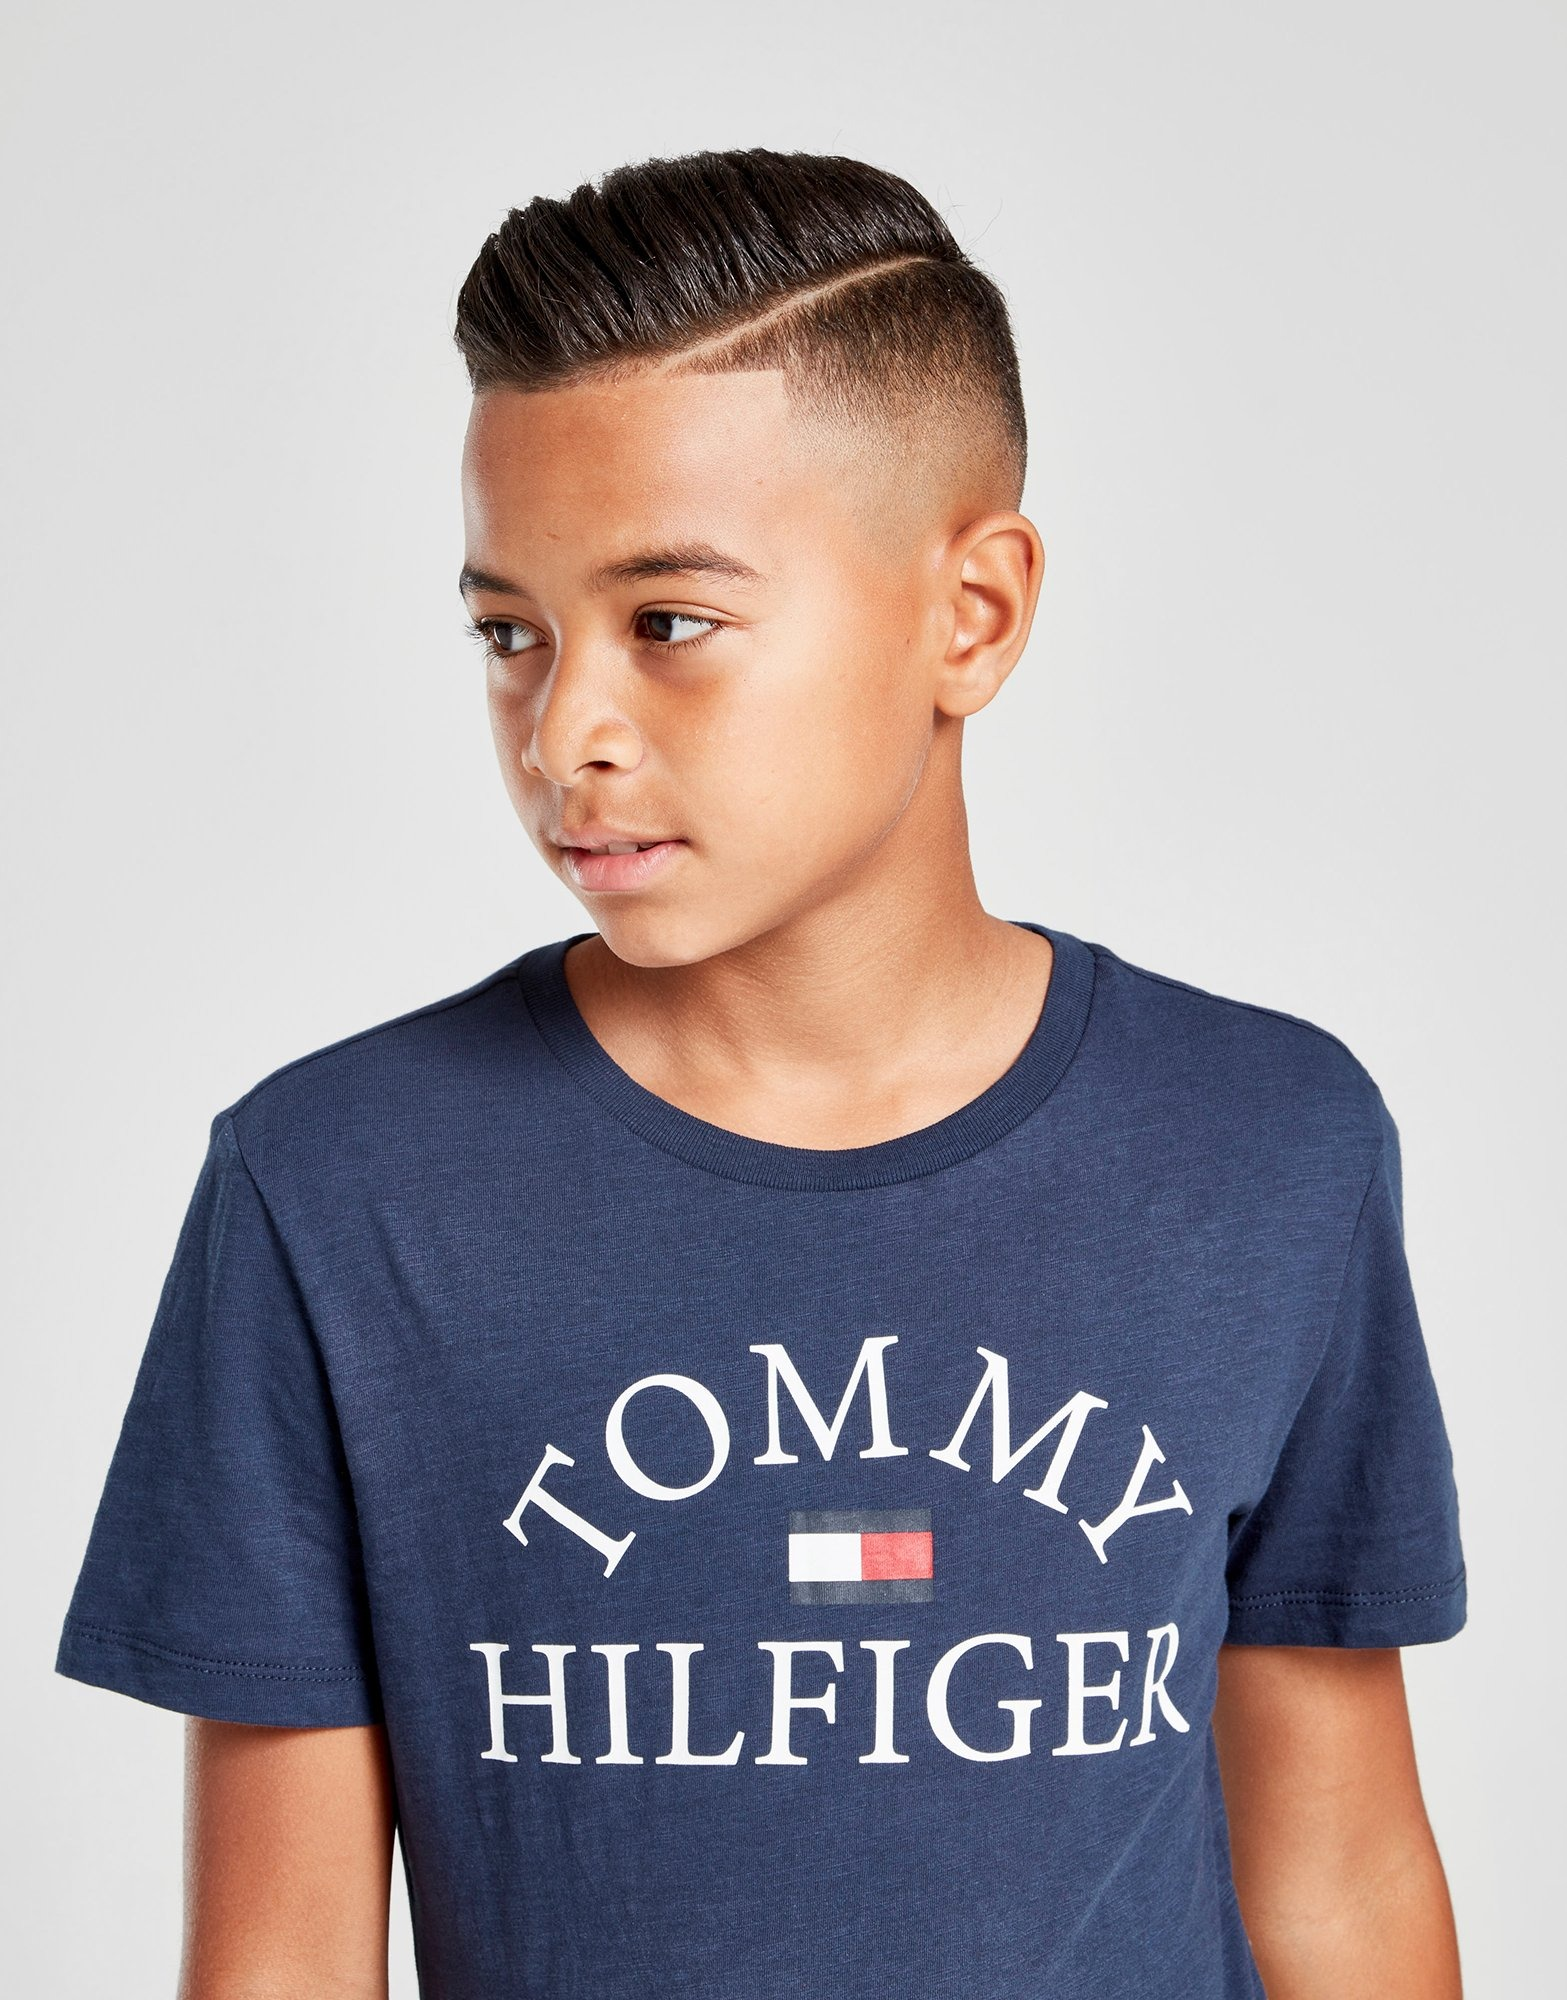 TOMMY HILFIGER MENS CLASSIC TEE SHIRT ALL sizes NWT 100/% cotton blue white gray